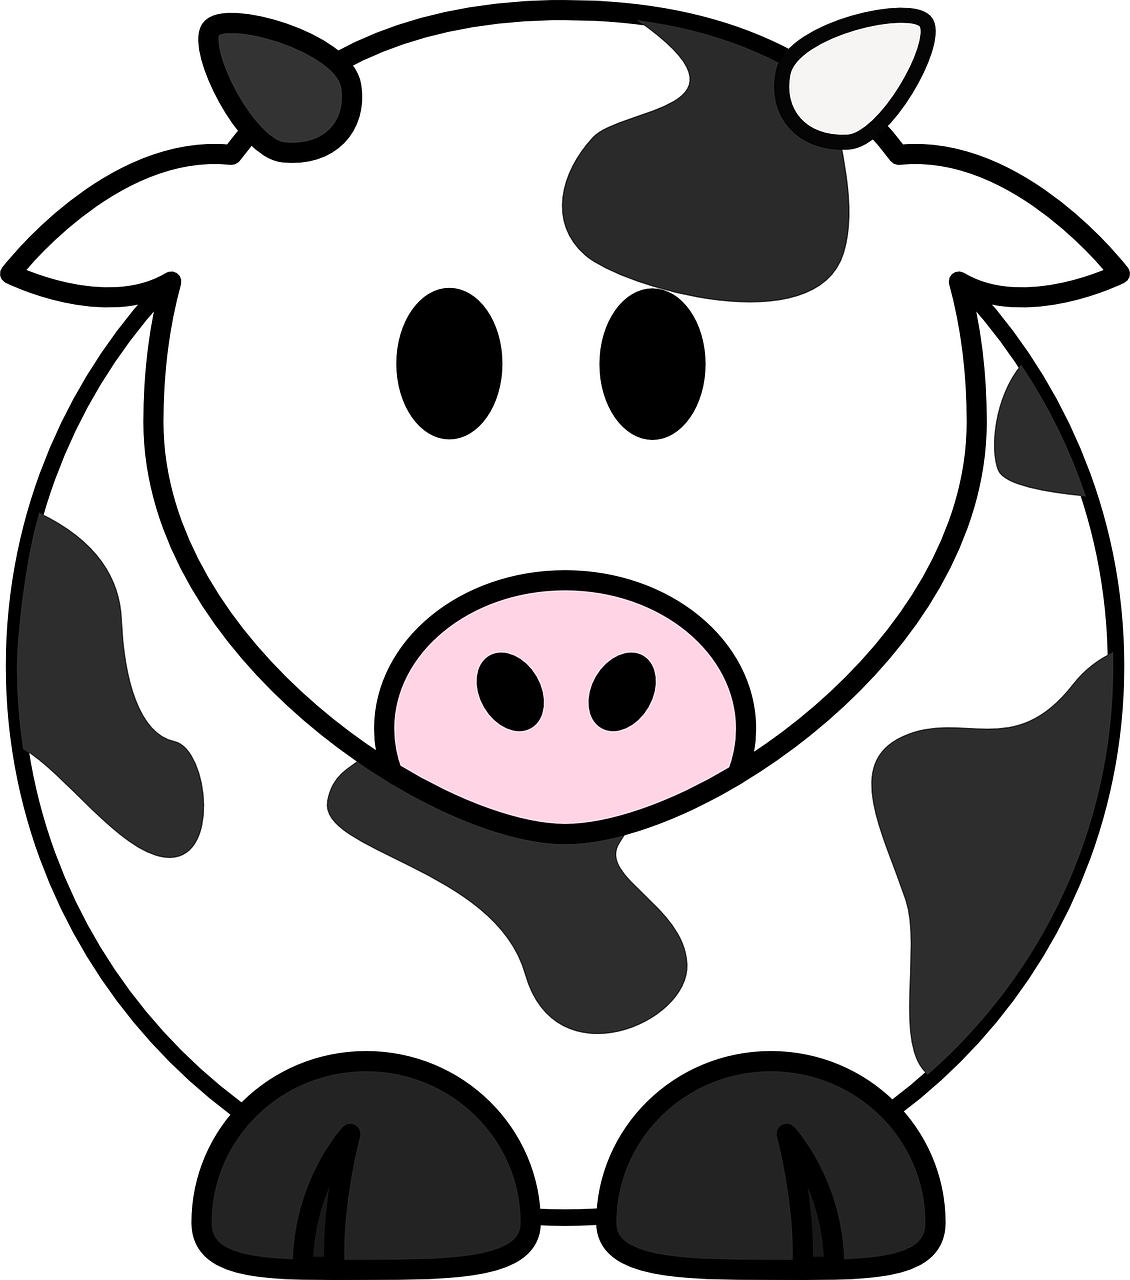 Drawing cow resting. Free image on pixabay